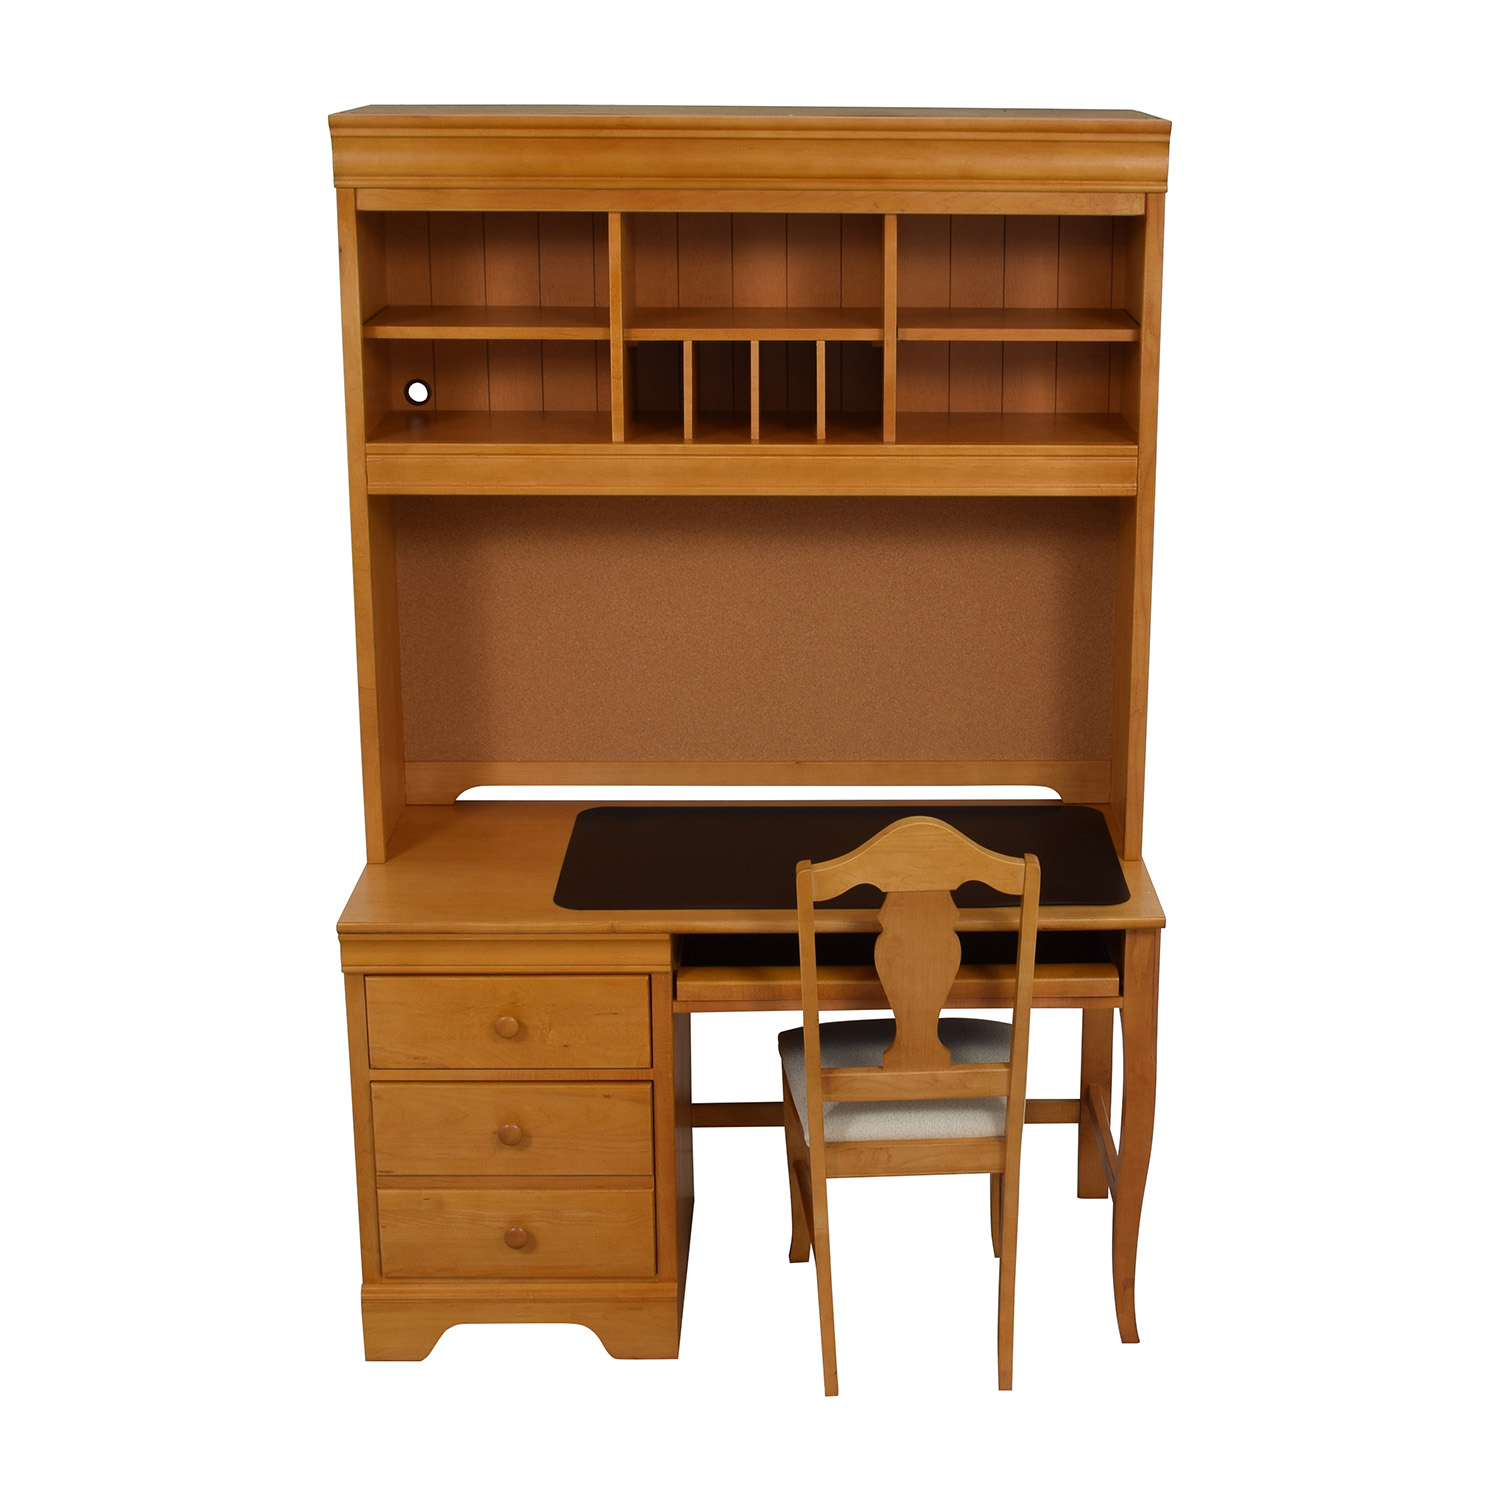 Stanley Furniture Stanley Furniture Custom Oak Wood Desk with Hutch and Chair natural